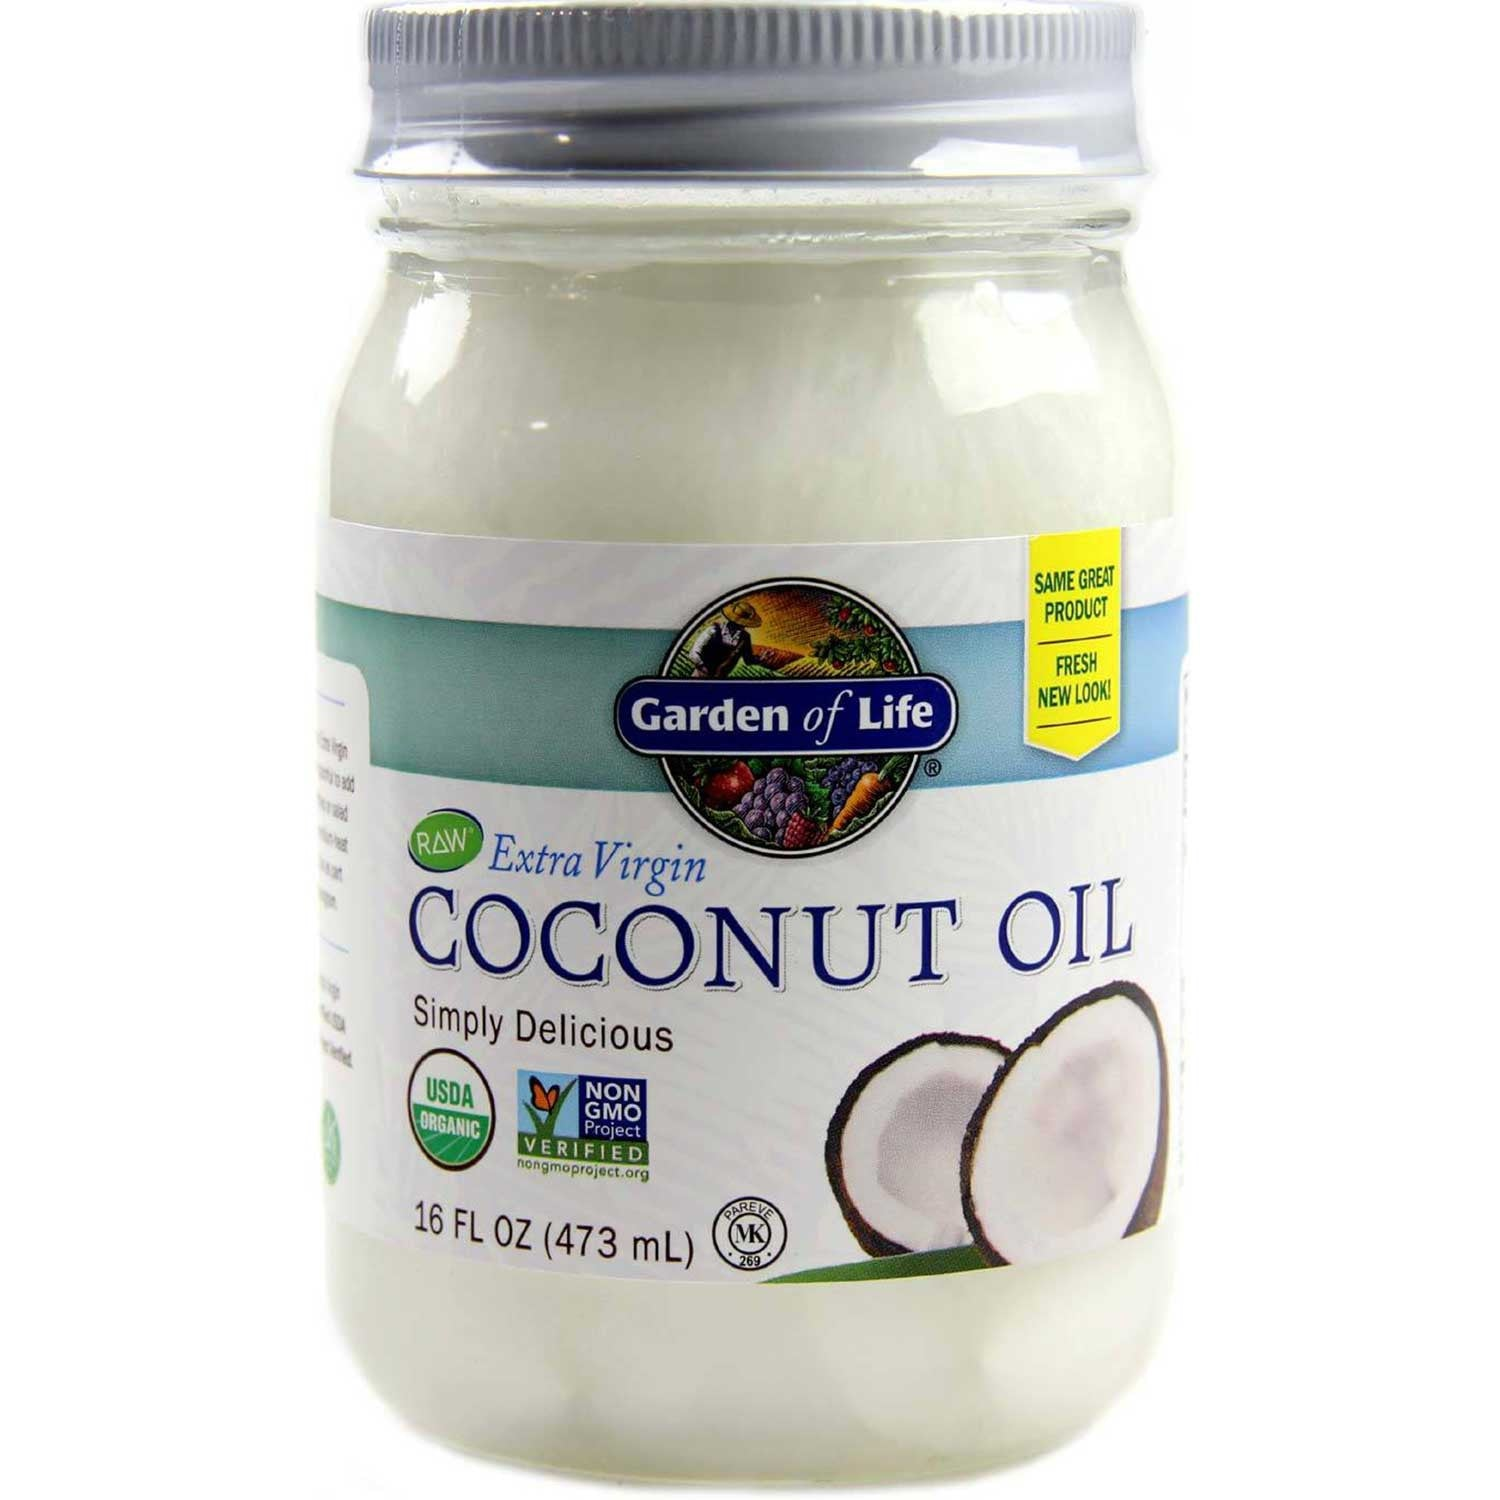 Garden of Life Extra Virgin Coconut Oil (Organic), 473 ml.-NaturesWisdom